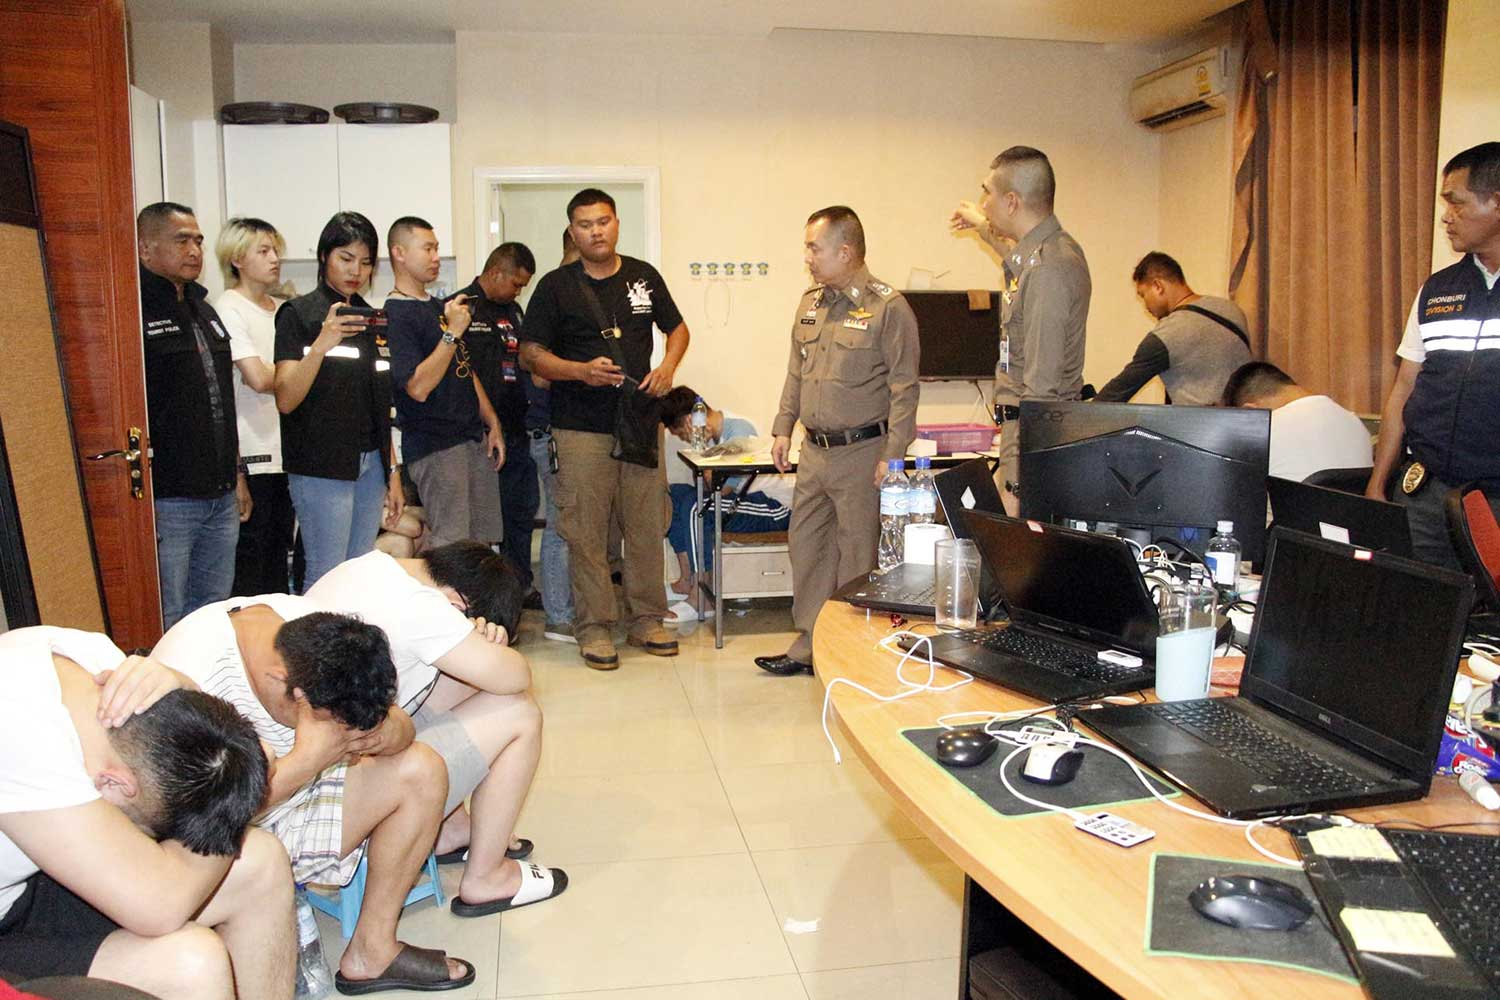 Police raid three rooms in a Pattaya condominium building in Chon Buri on Tuesday night and find 19 Chinese nationals, men and women, running an online gambling operation. (Photo by Chaiyot Pupattanapong)